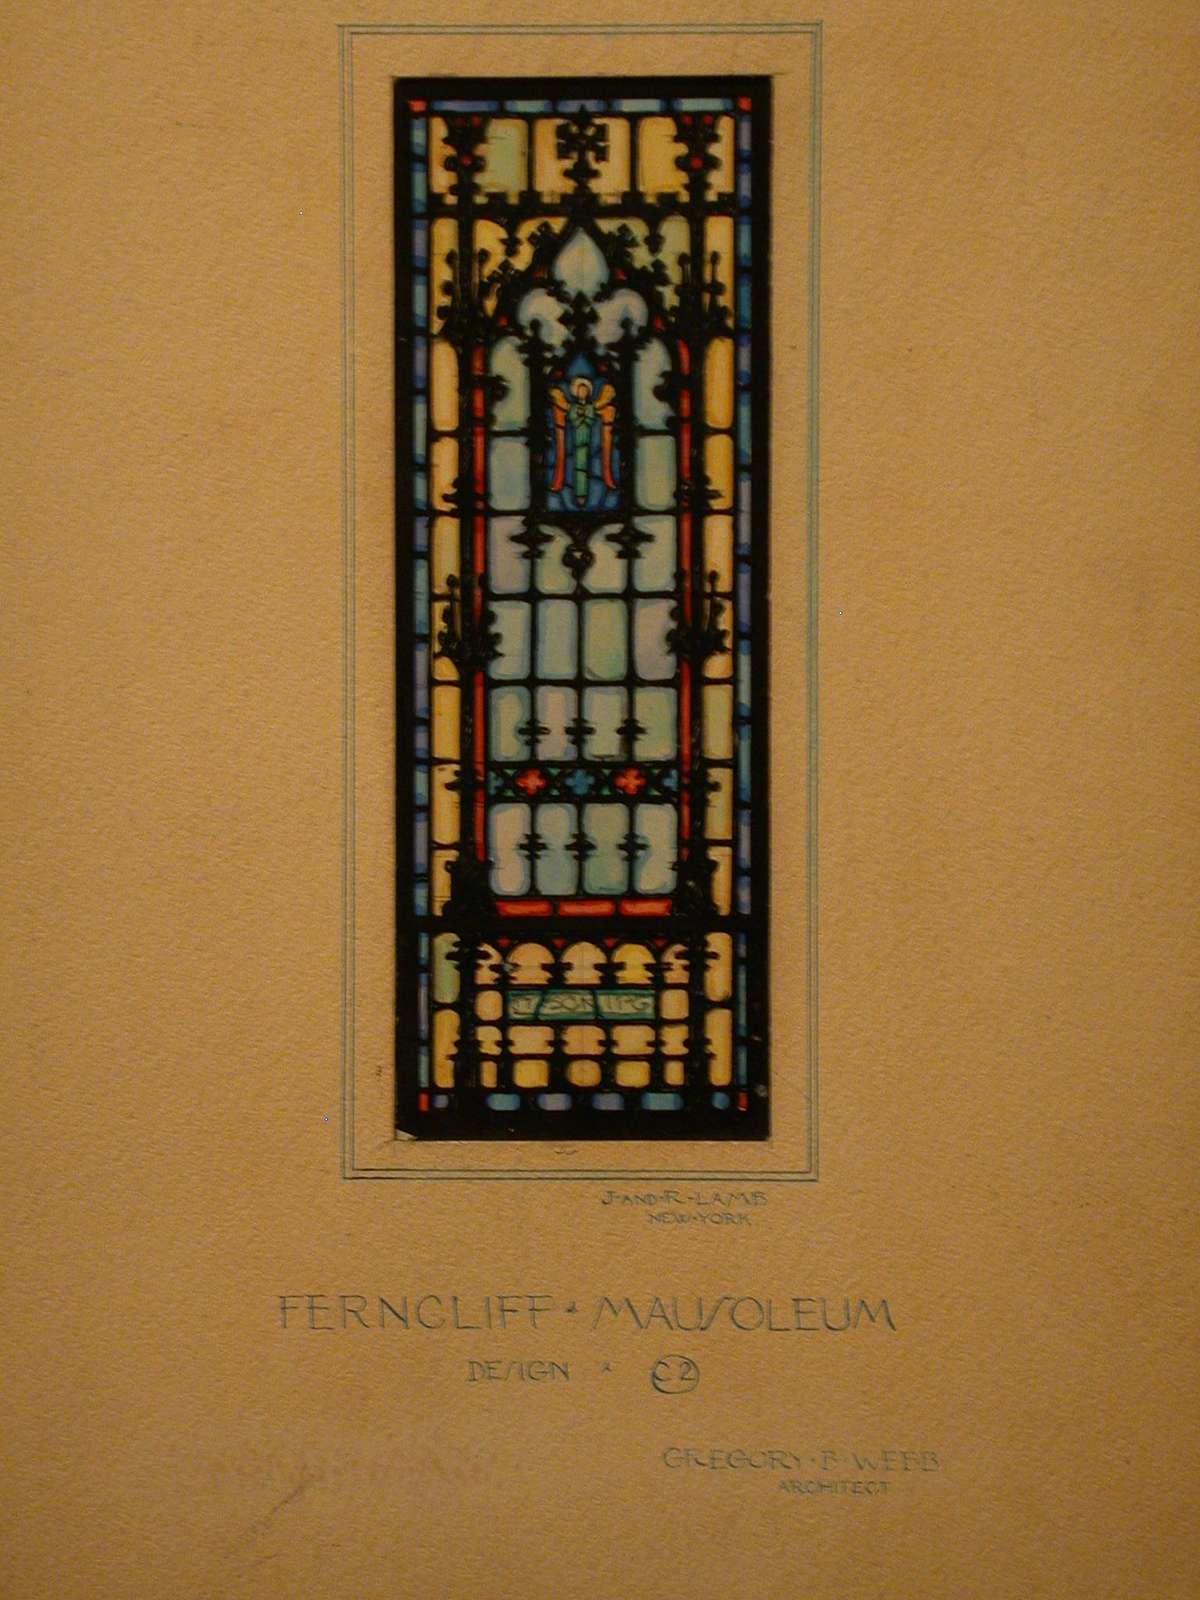 Design drawing for stained glass window for Ferncliff Mausoleum with design C2 of an angel